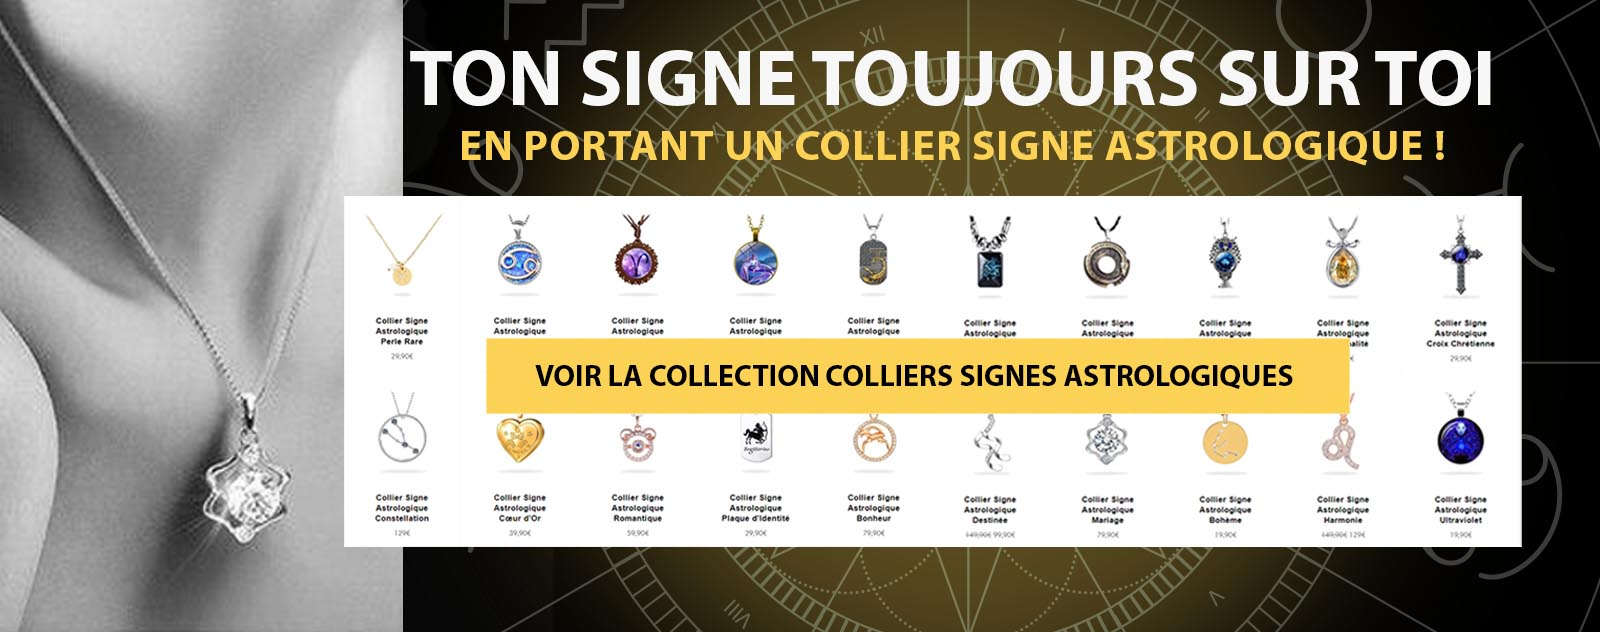 Collection Colliers Signes Astrologiques | Univers Astrologie